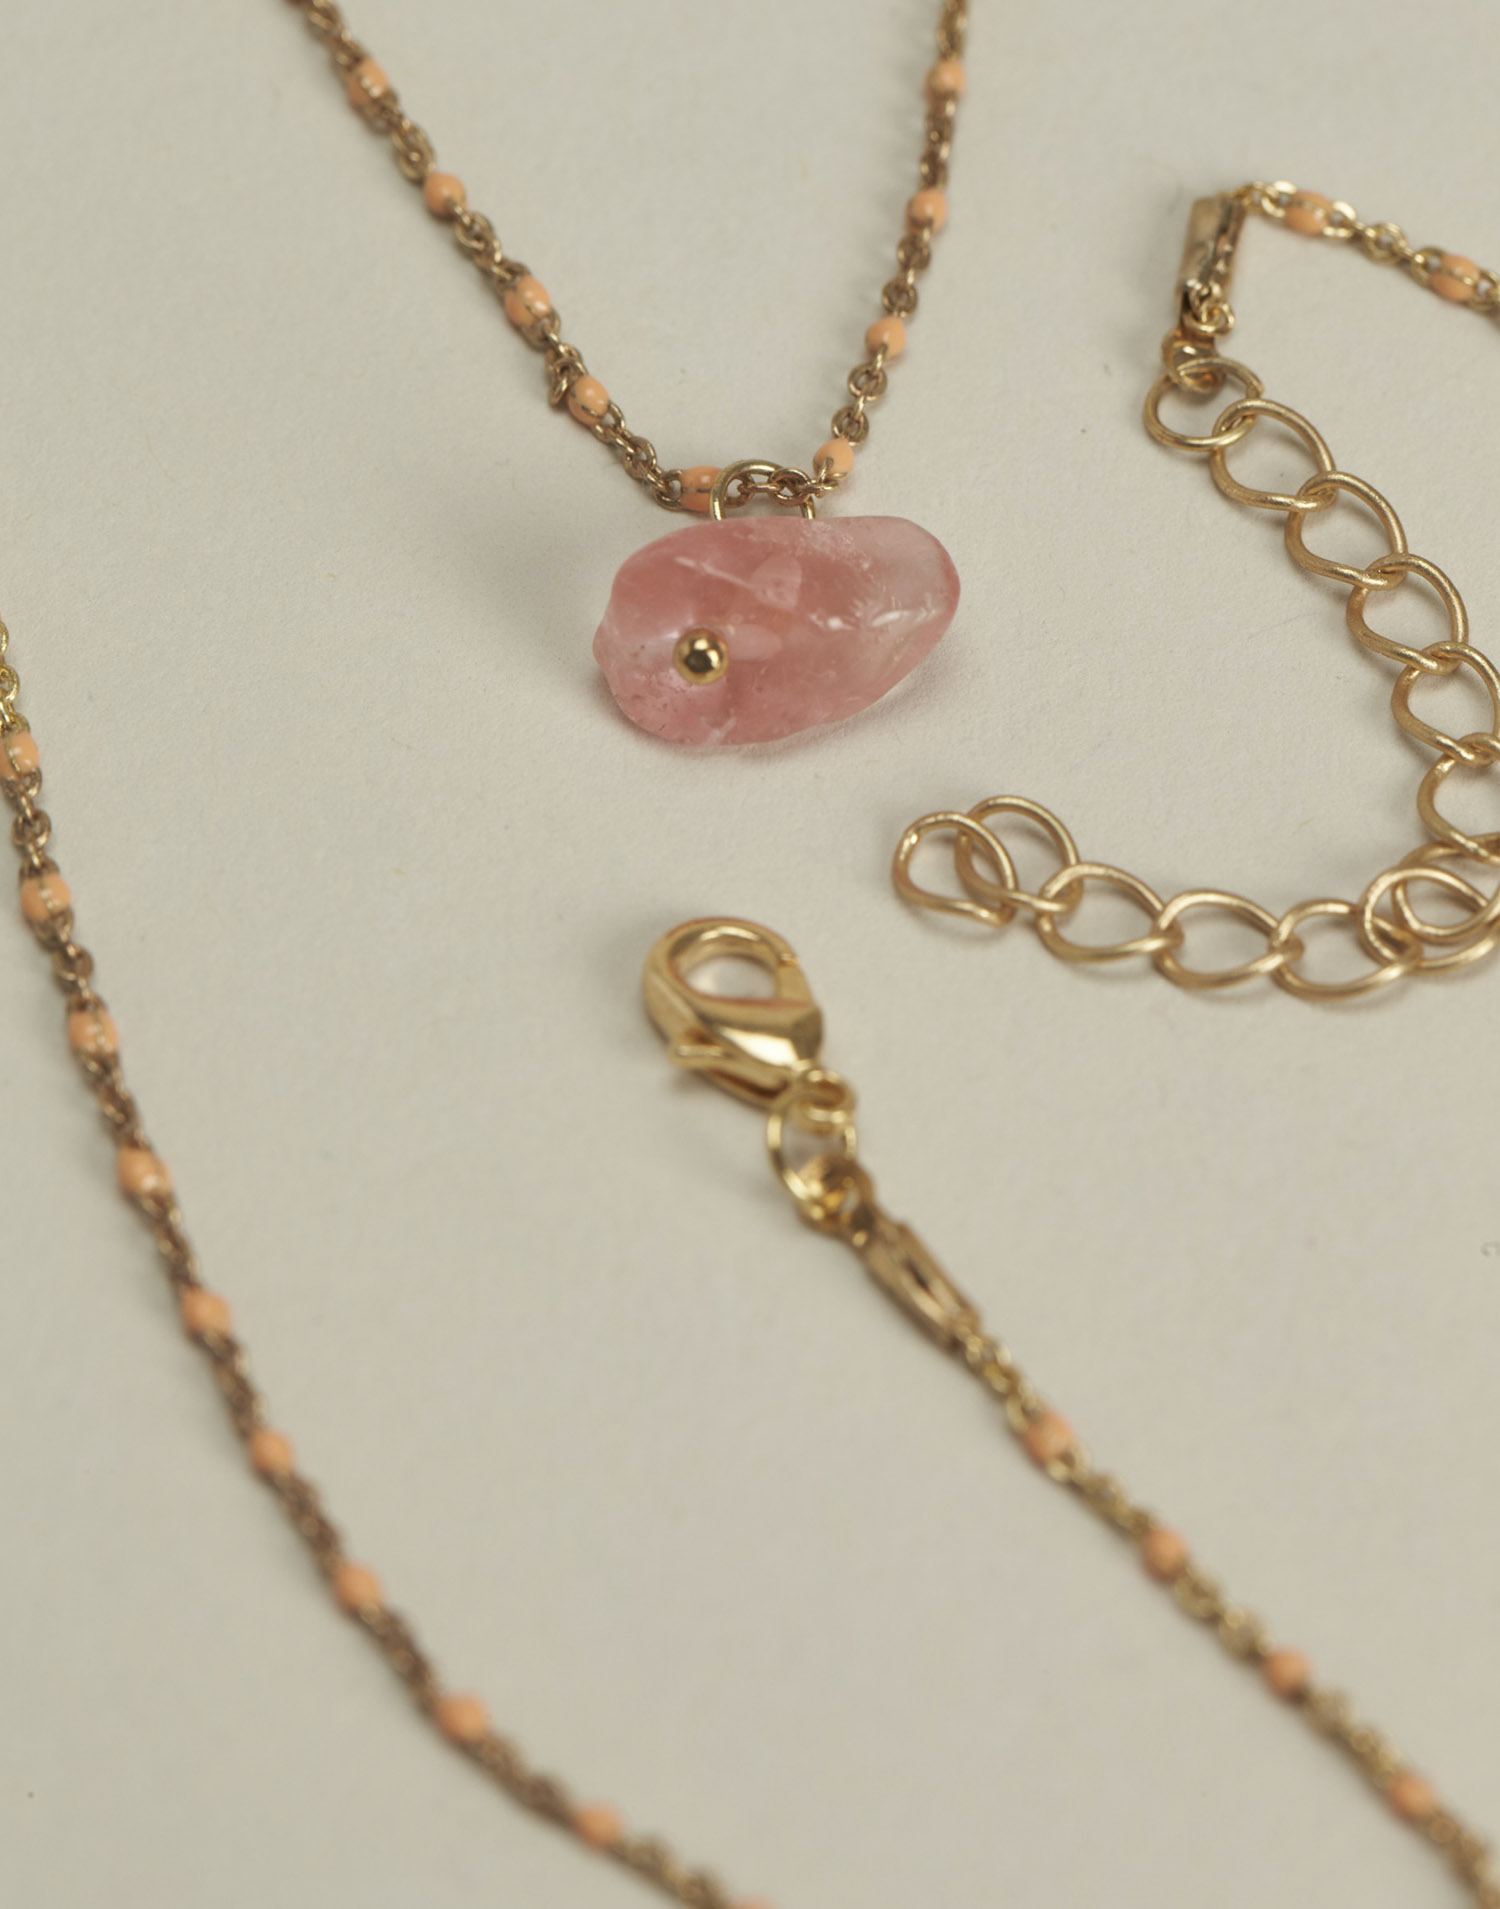 Thin chain stone necklace